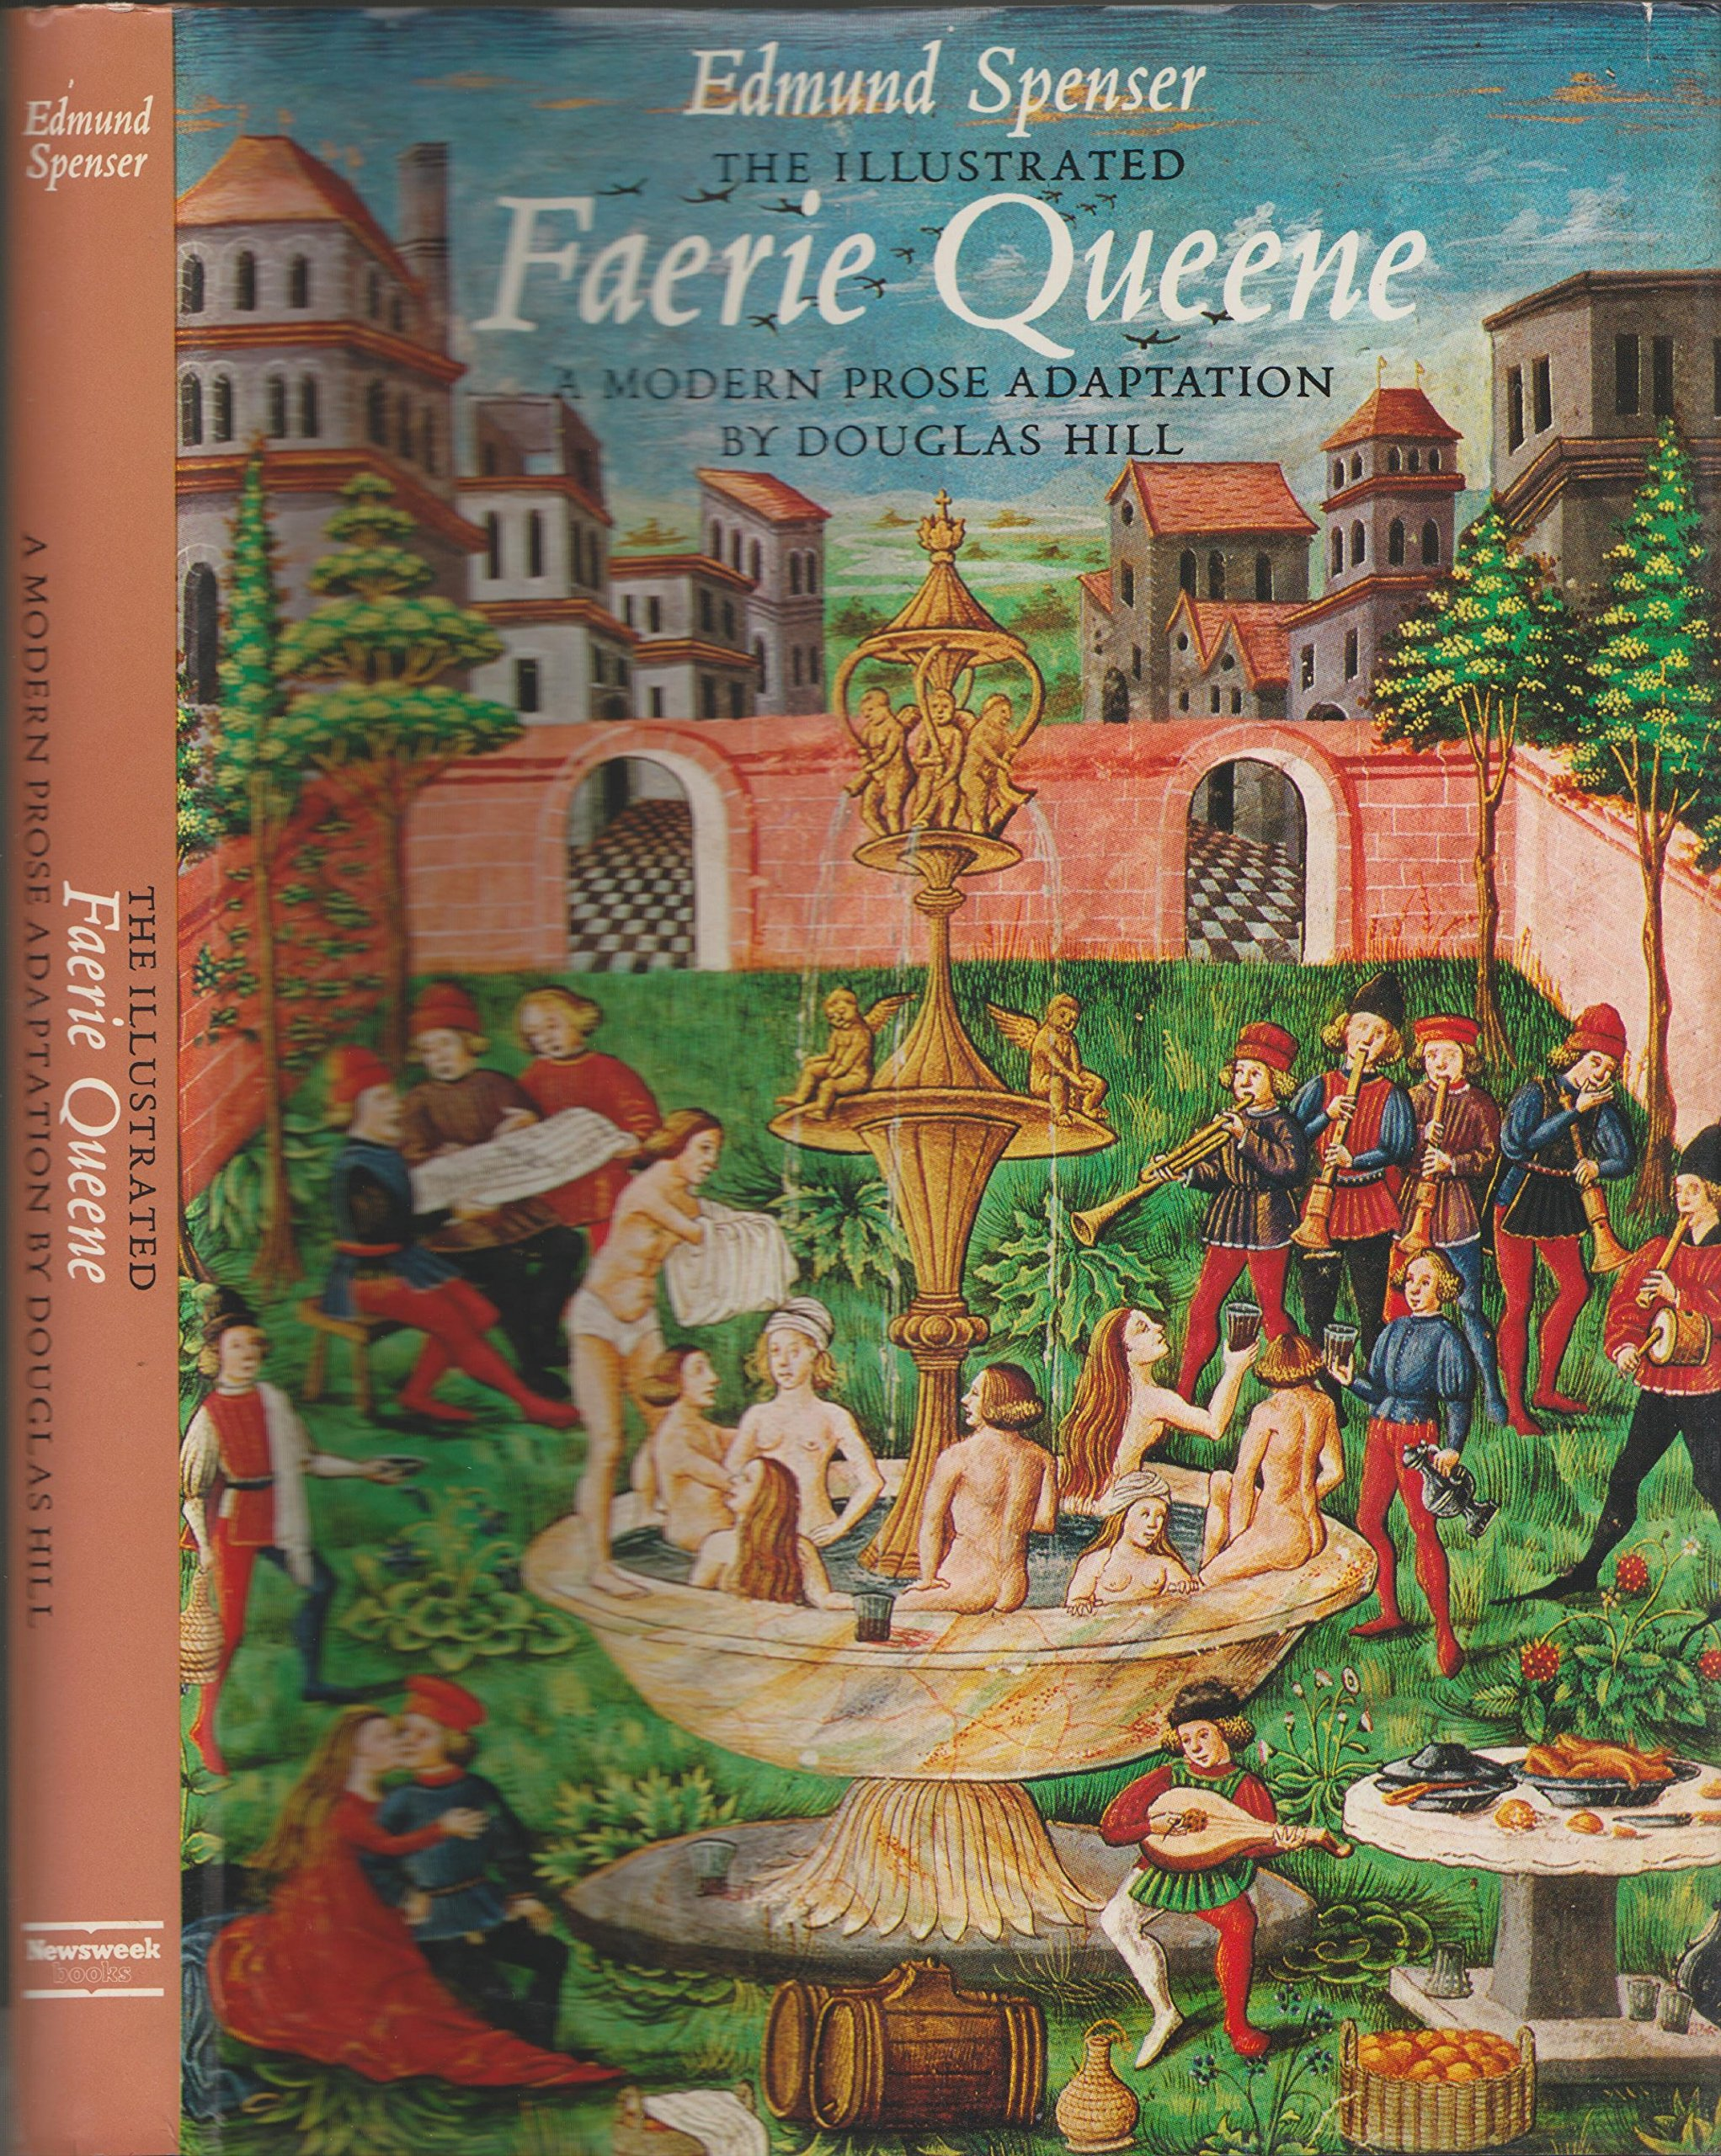 The illustrated Faerie Queene: Douglas Hill, Edmund Spenser: 9780882252971: Amazon.com: Books